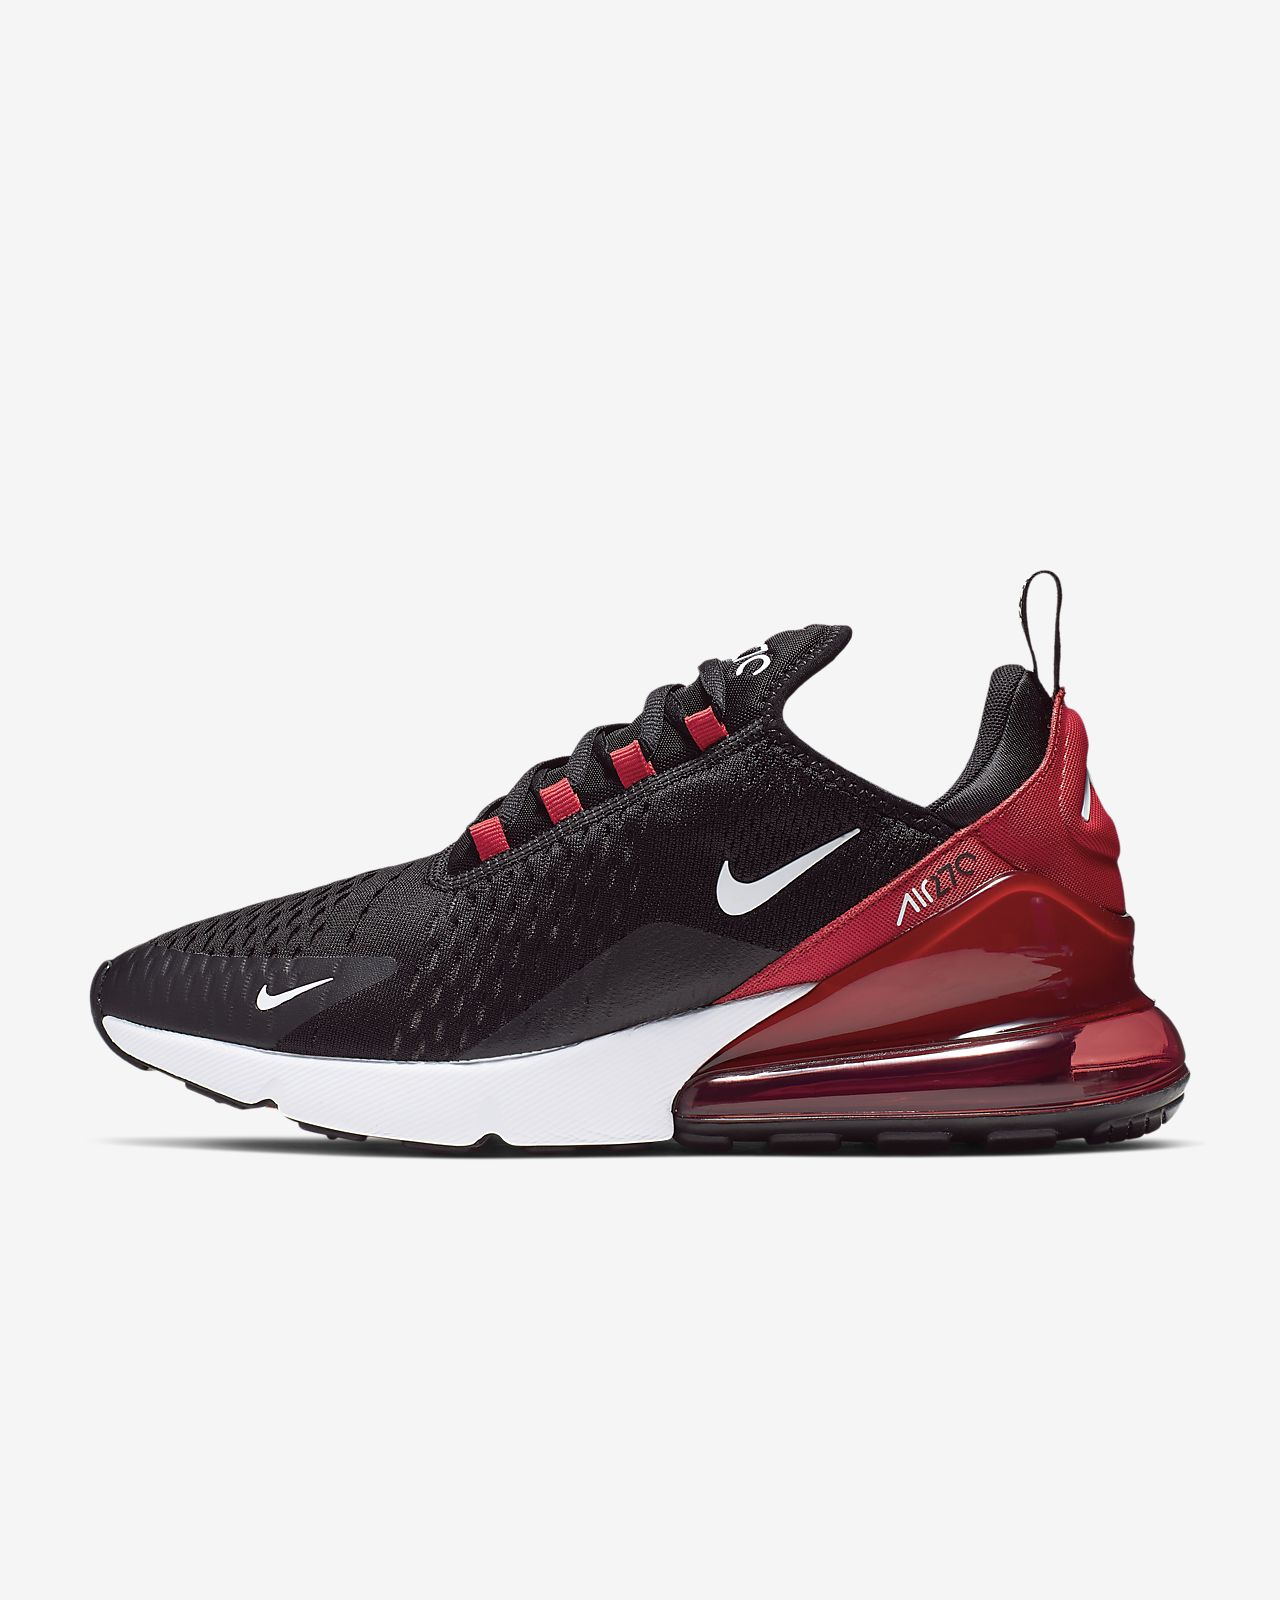 8a178b70eec9 Nike Air Max 270 Men s Shoe. Nike.com IE